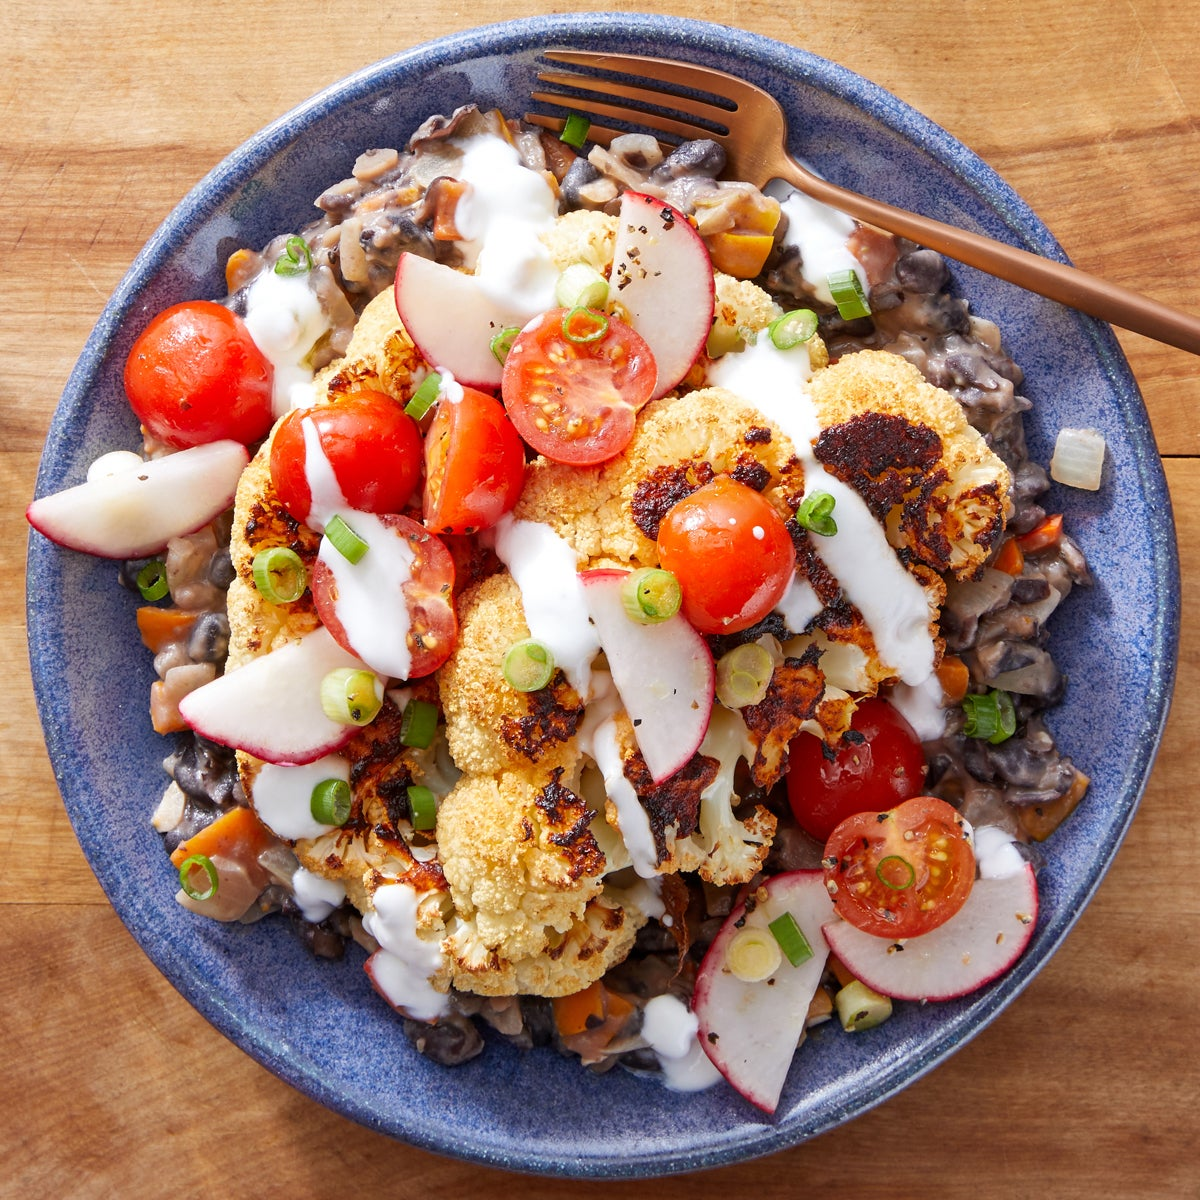 Chipotle-Roasted Cauliflower with Black Bean Mash & Fresh Tomato Salsa